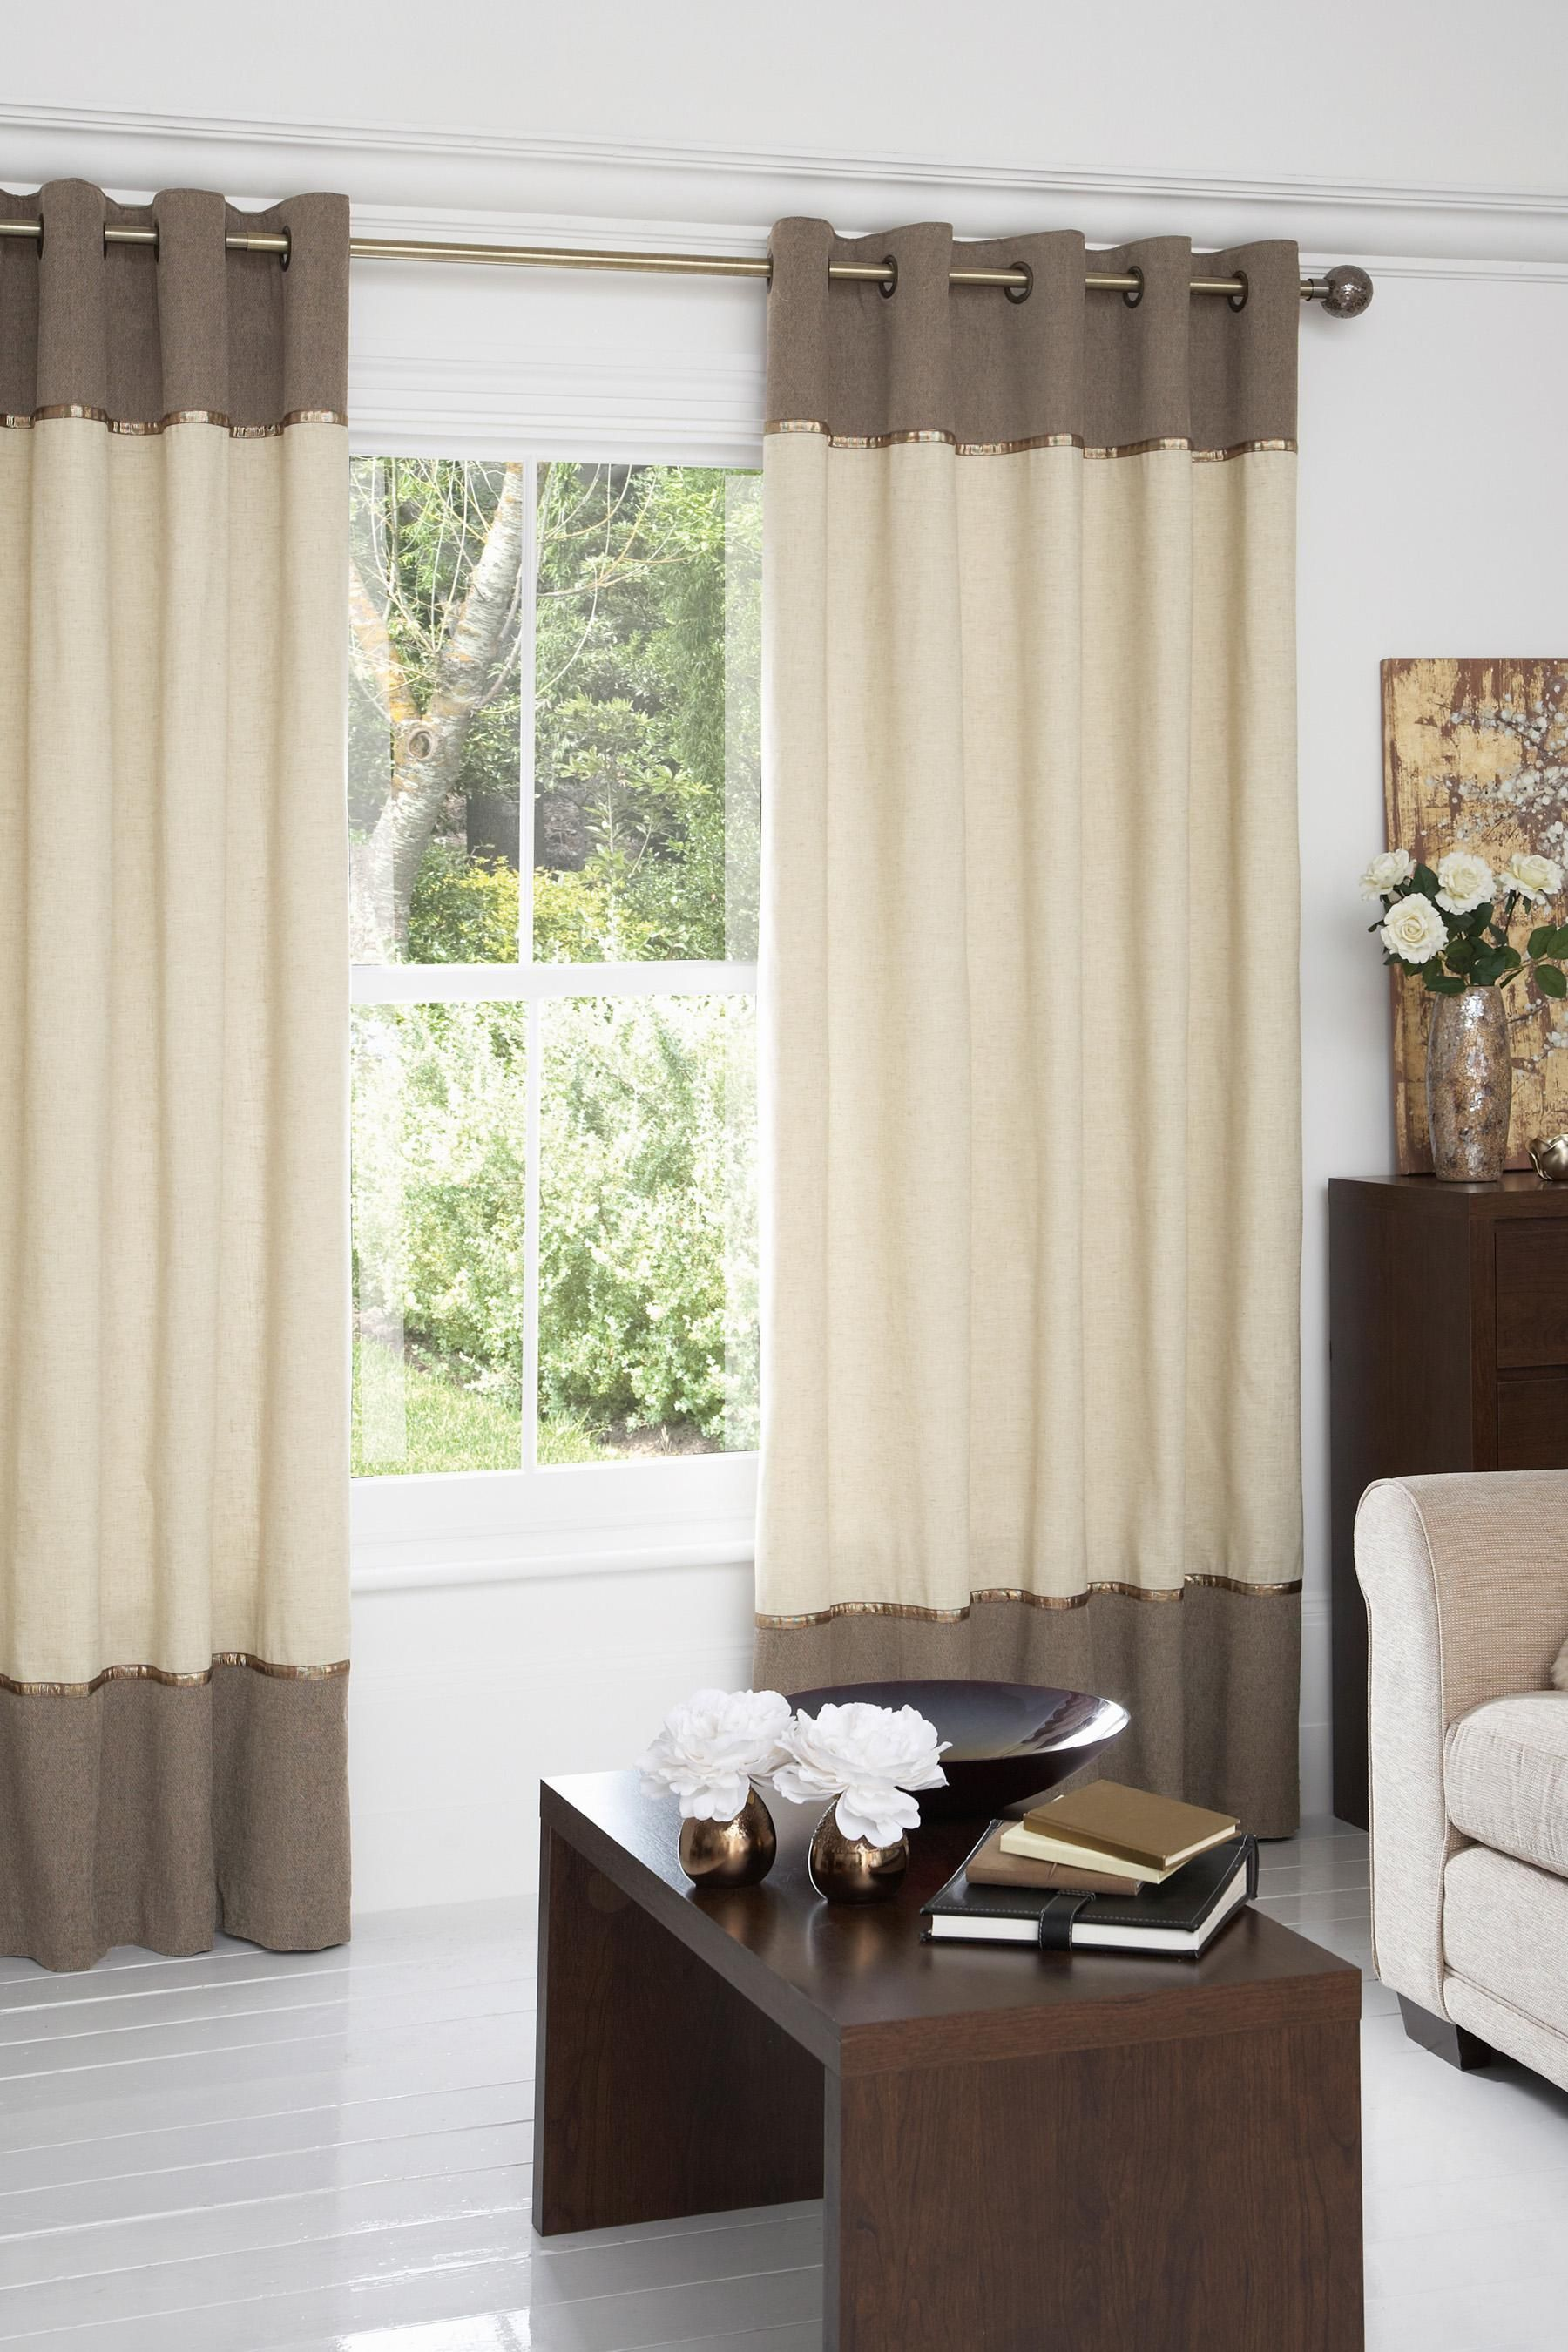 Banded curtain curtain pinterest window curtain ideas and